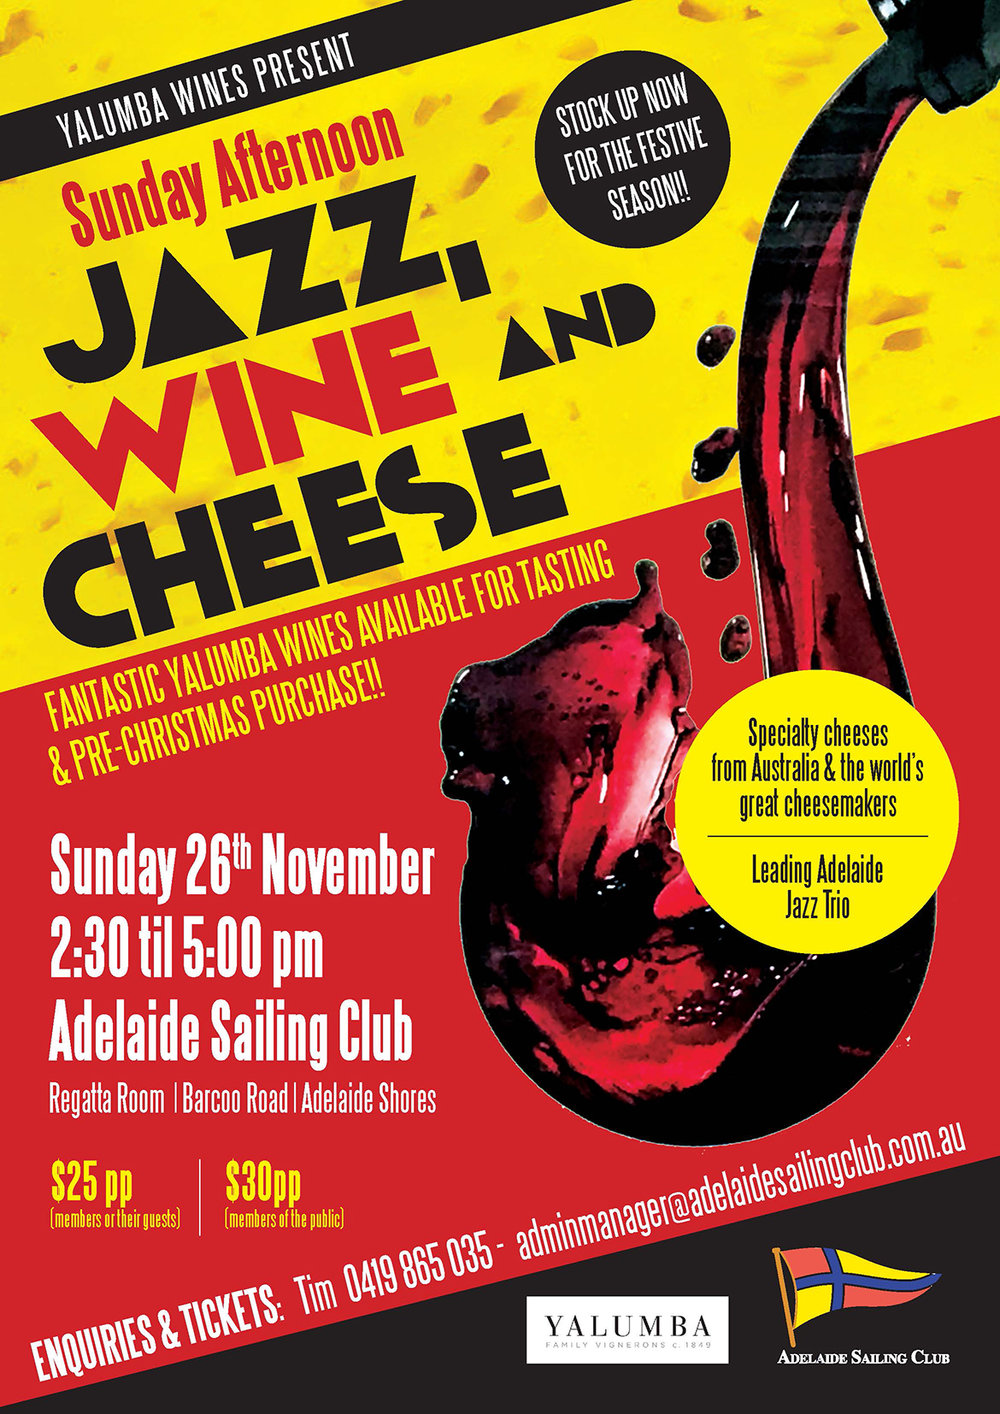 45793_ADELAIDE SAILING CLUB, WIne & Cheese Posters.jpg